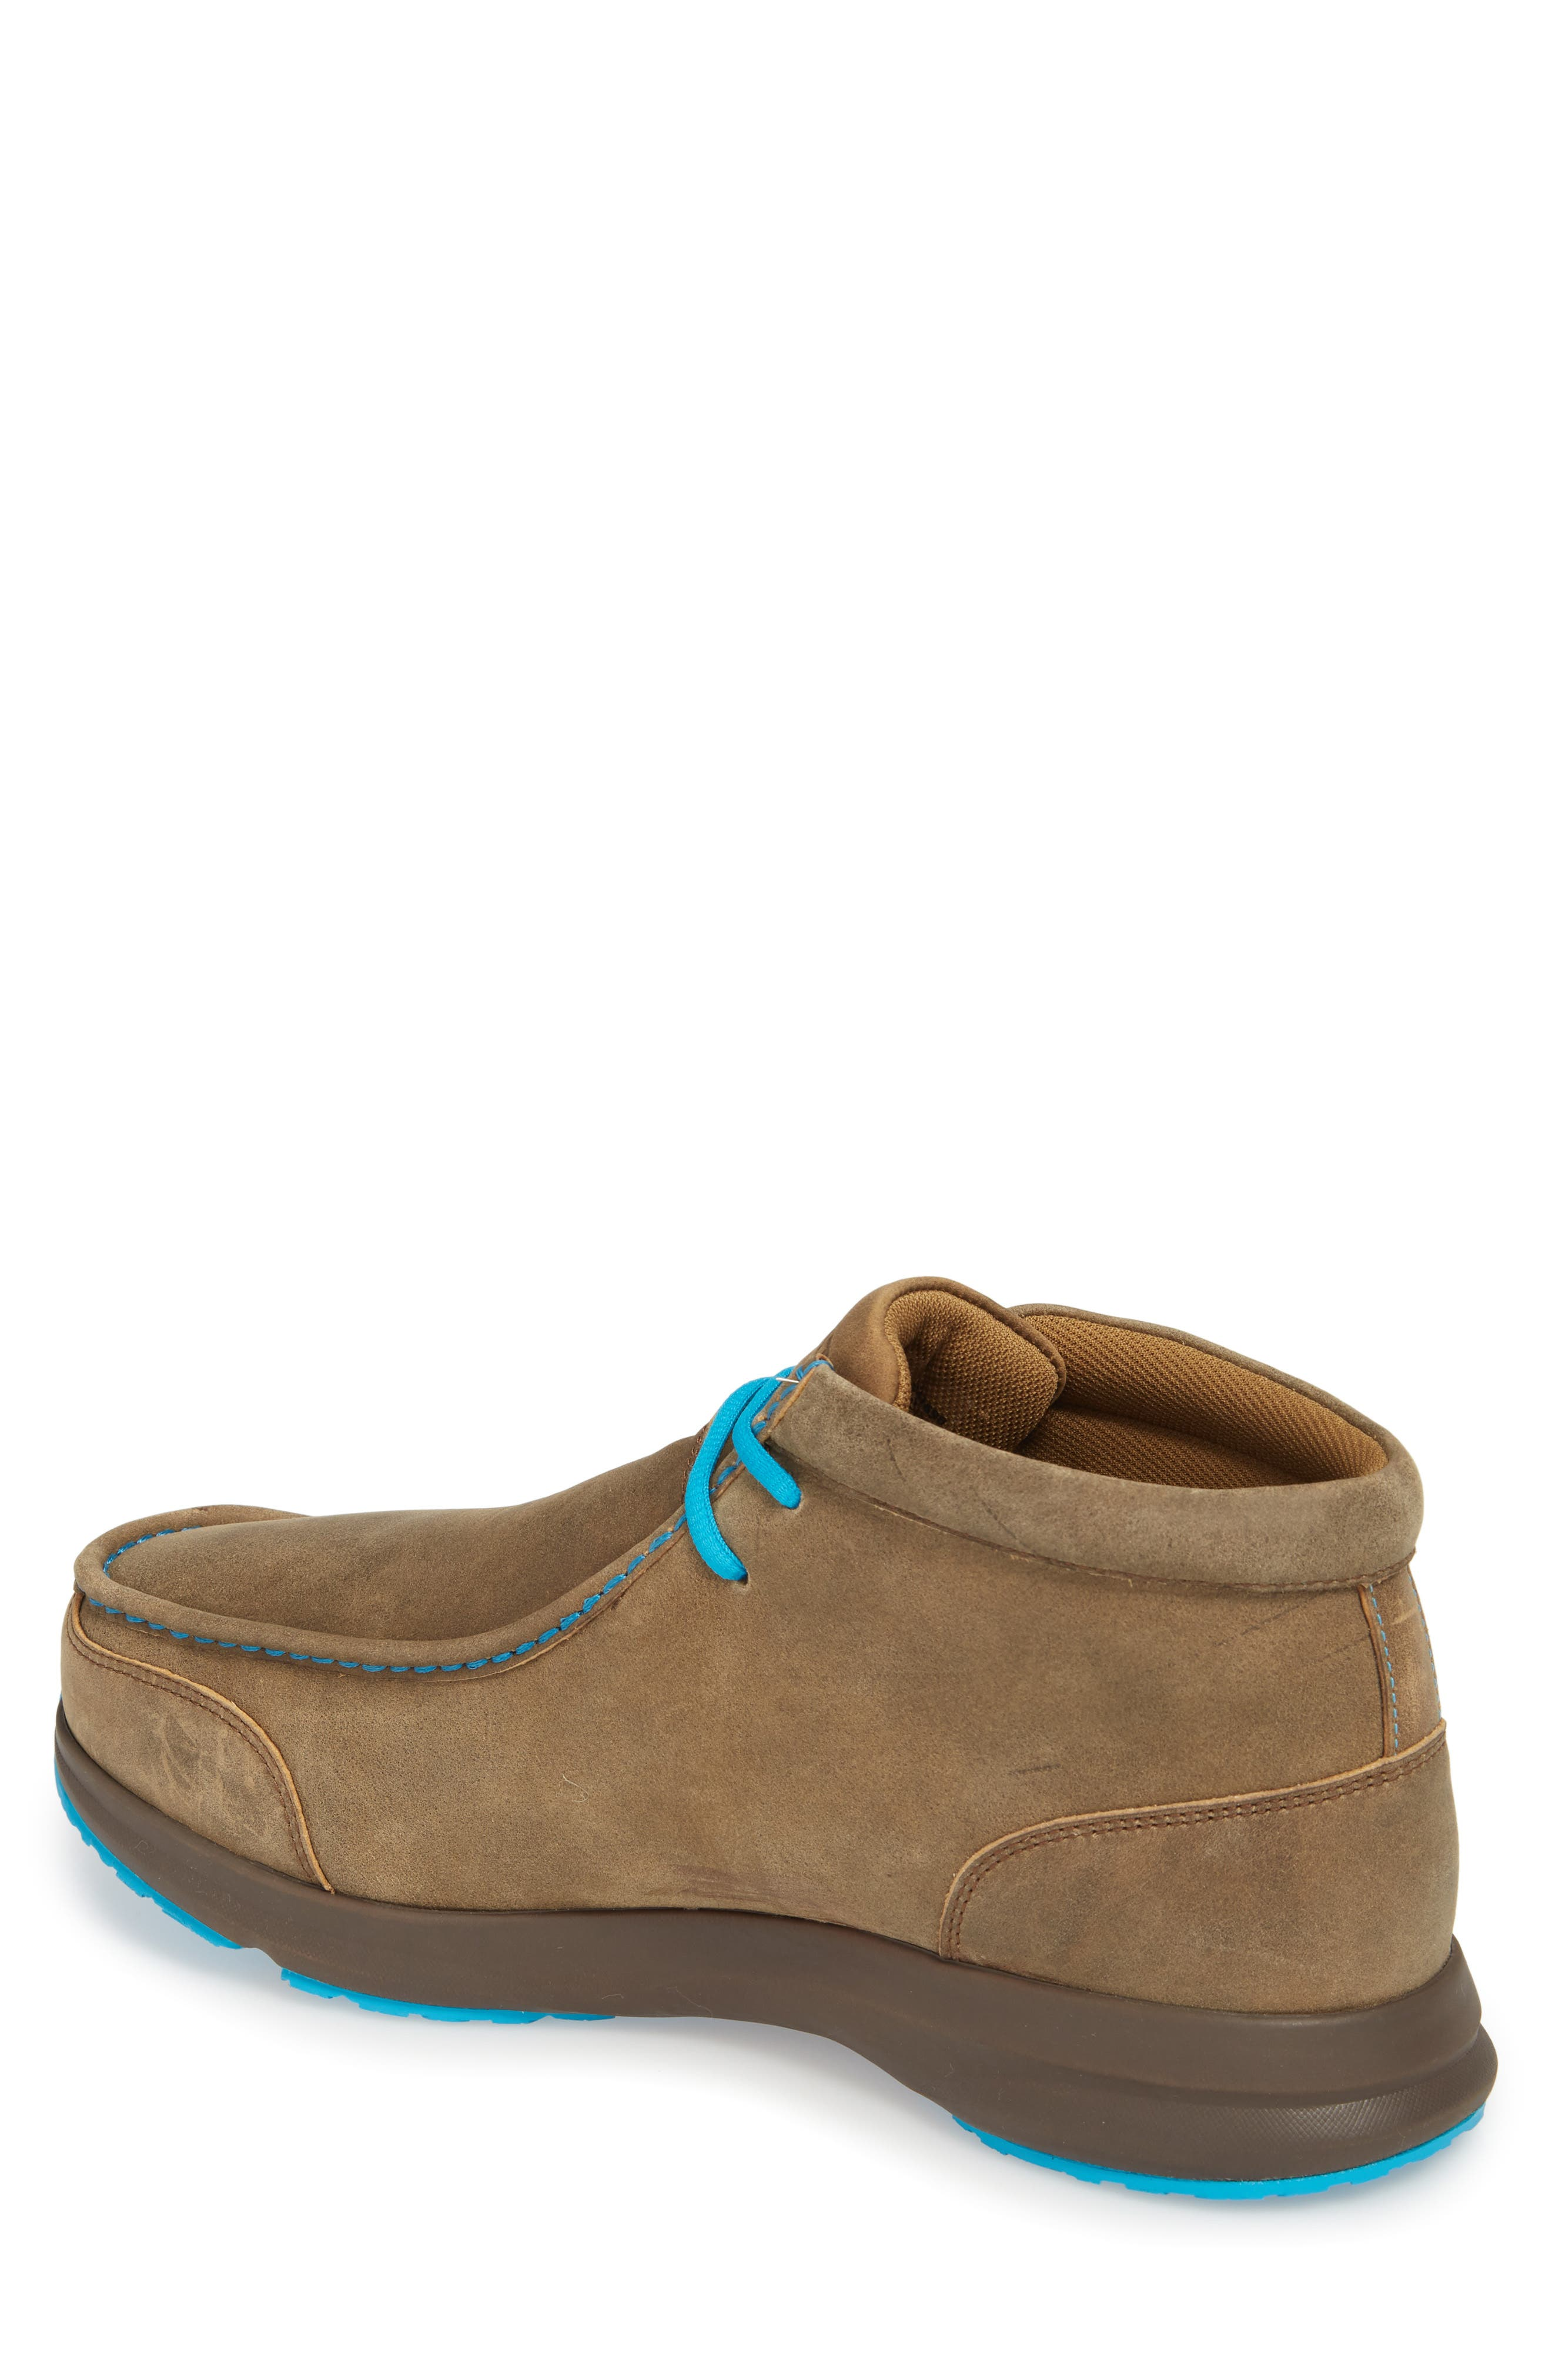 ARIAT, Spitfire Chukka Boot, Alternate thumbnail 2, color, BROWN BOMBER/ BLUE LEATHER